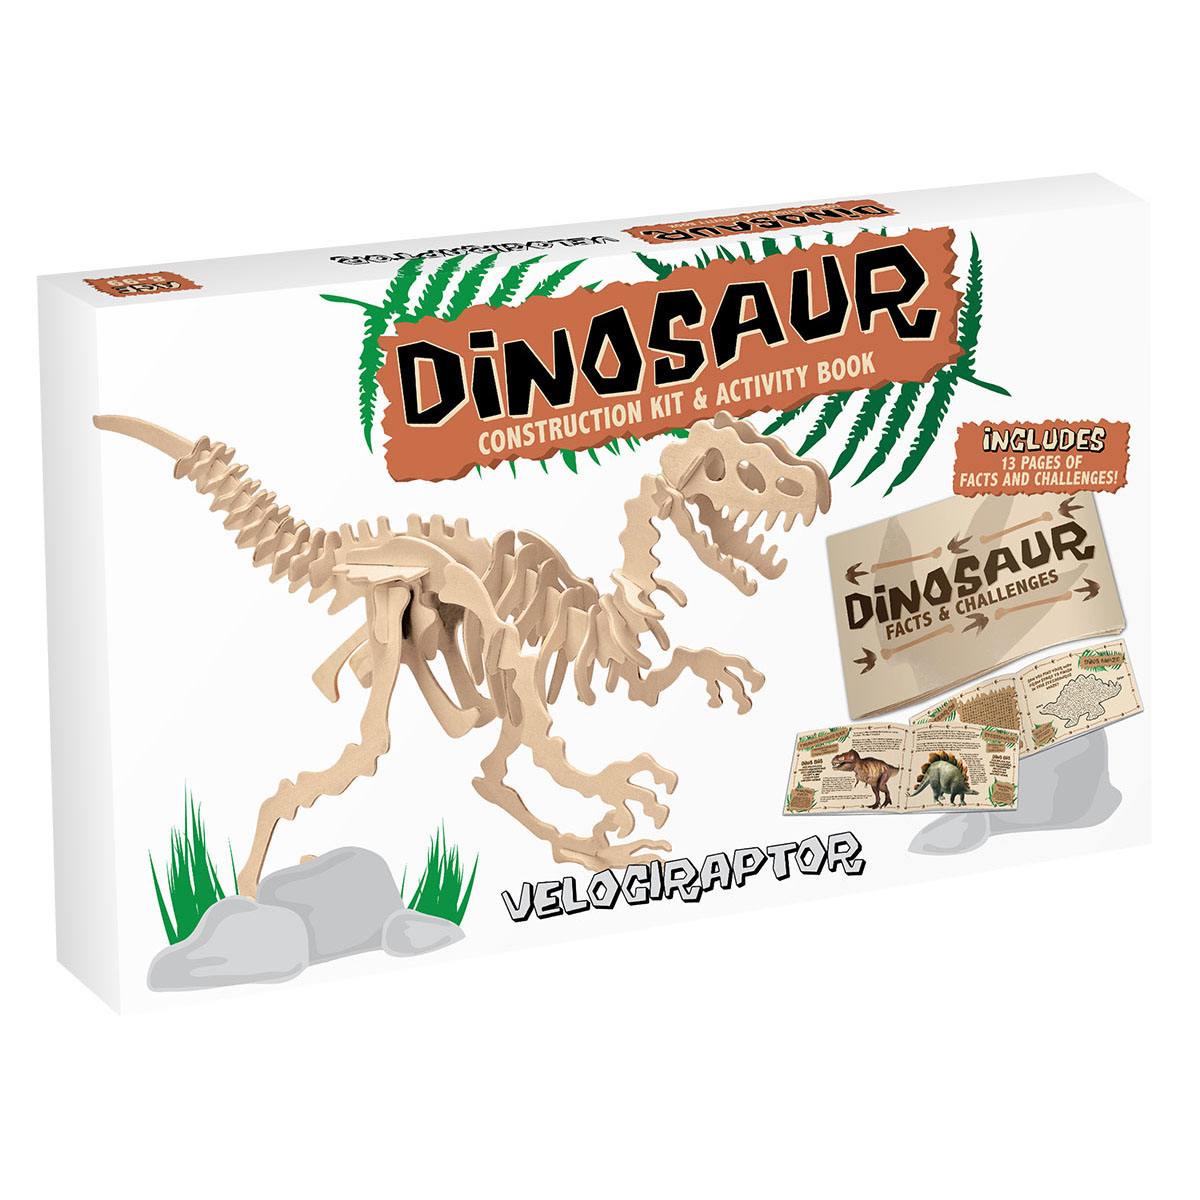 Dinosaur Construction Kit - Velociraptor